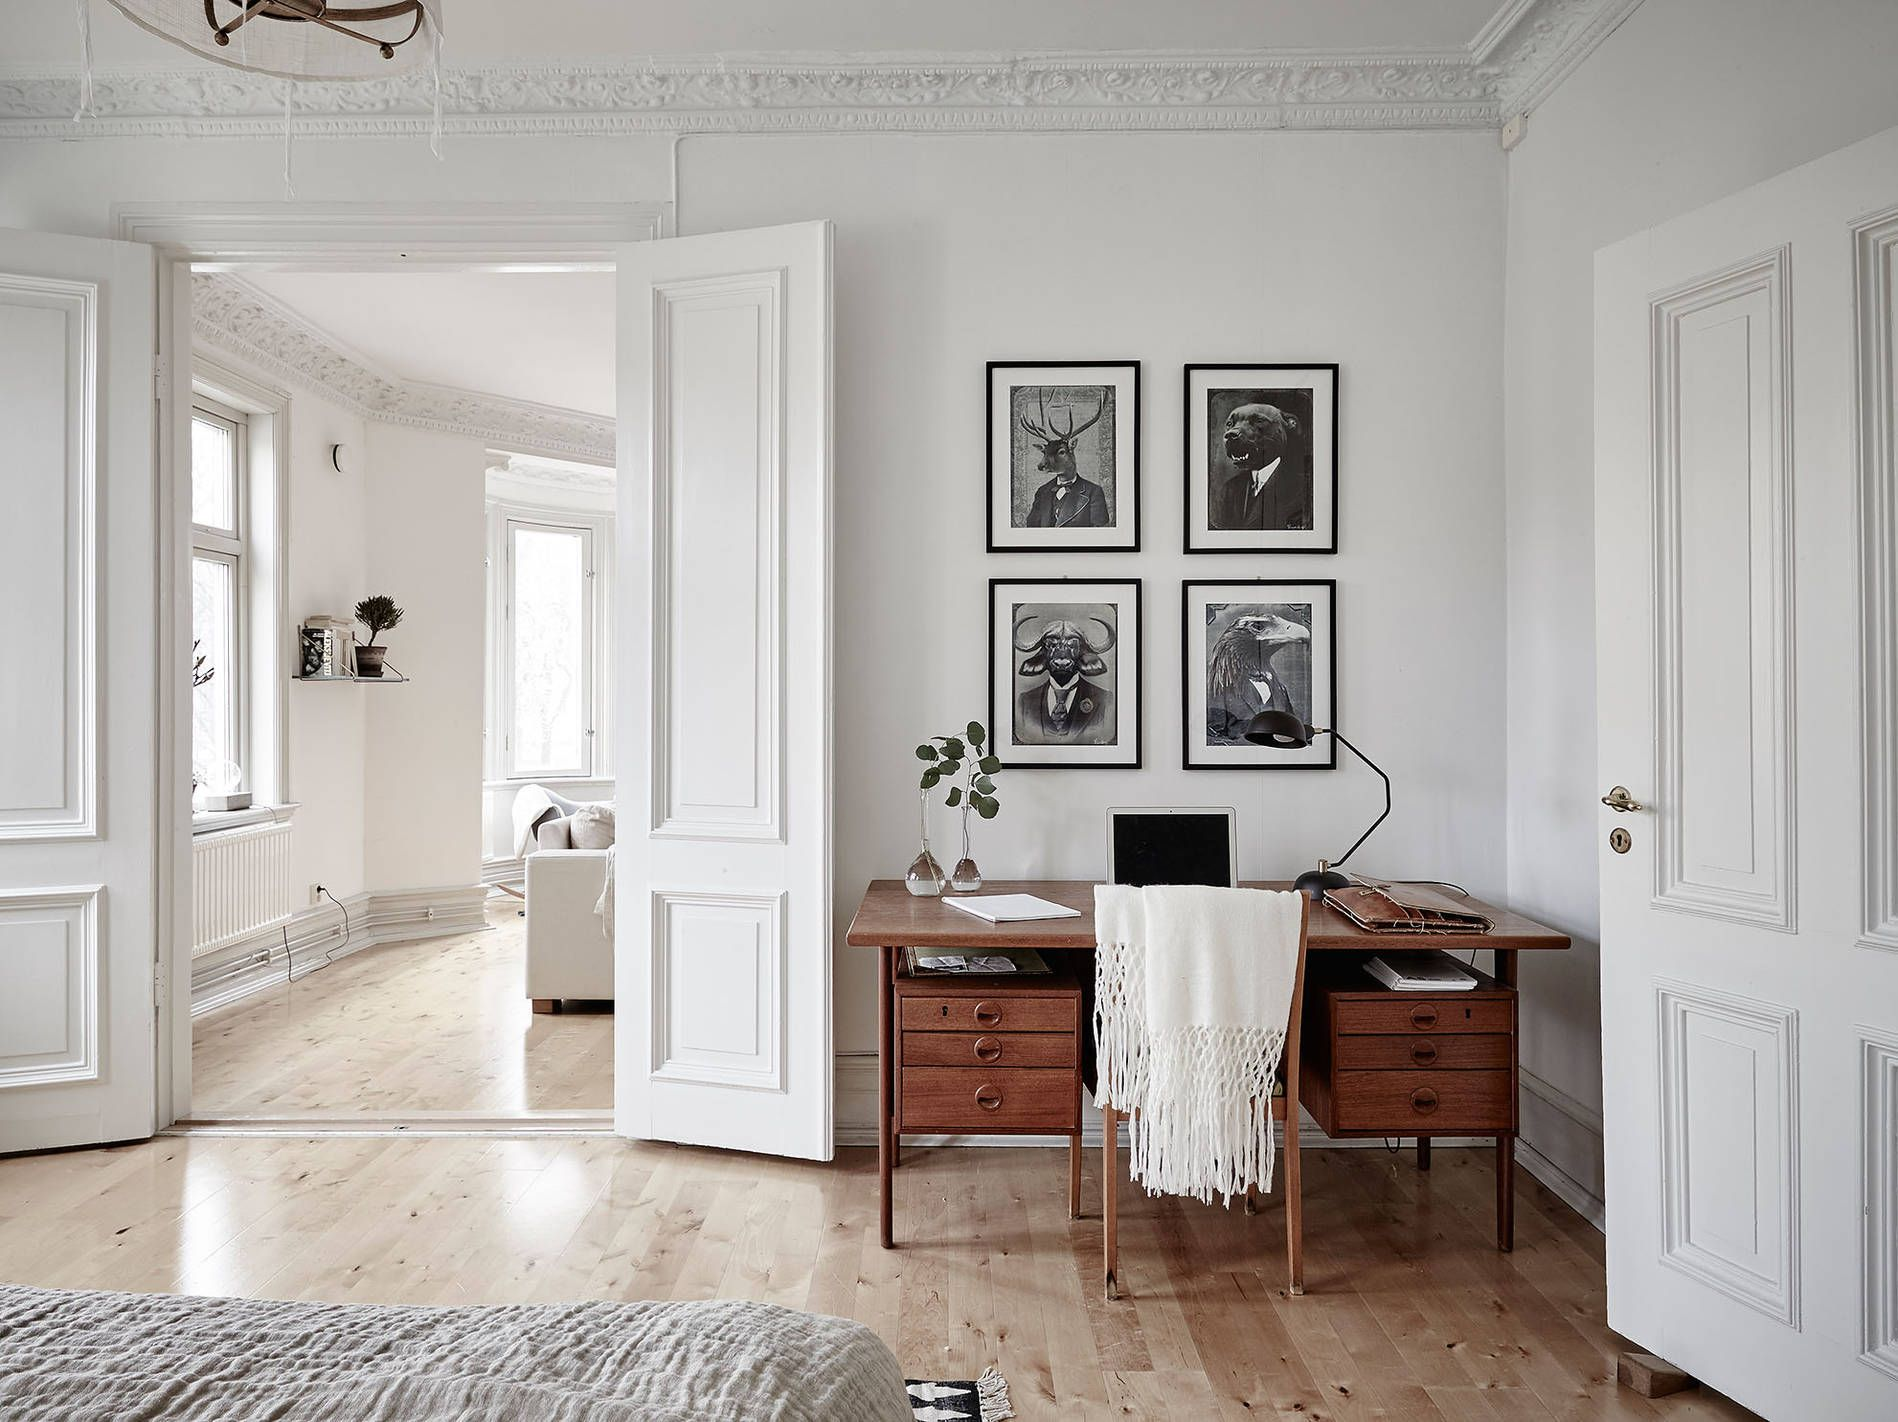 schwedischer altbau 11 wohnen pinterest altbauten. Black Bedroom Furniture Sets. Home Design Ideas